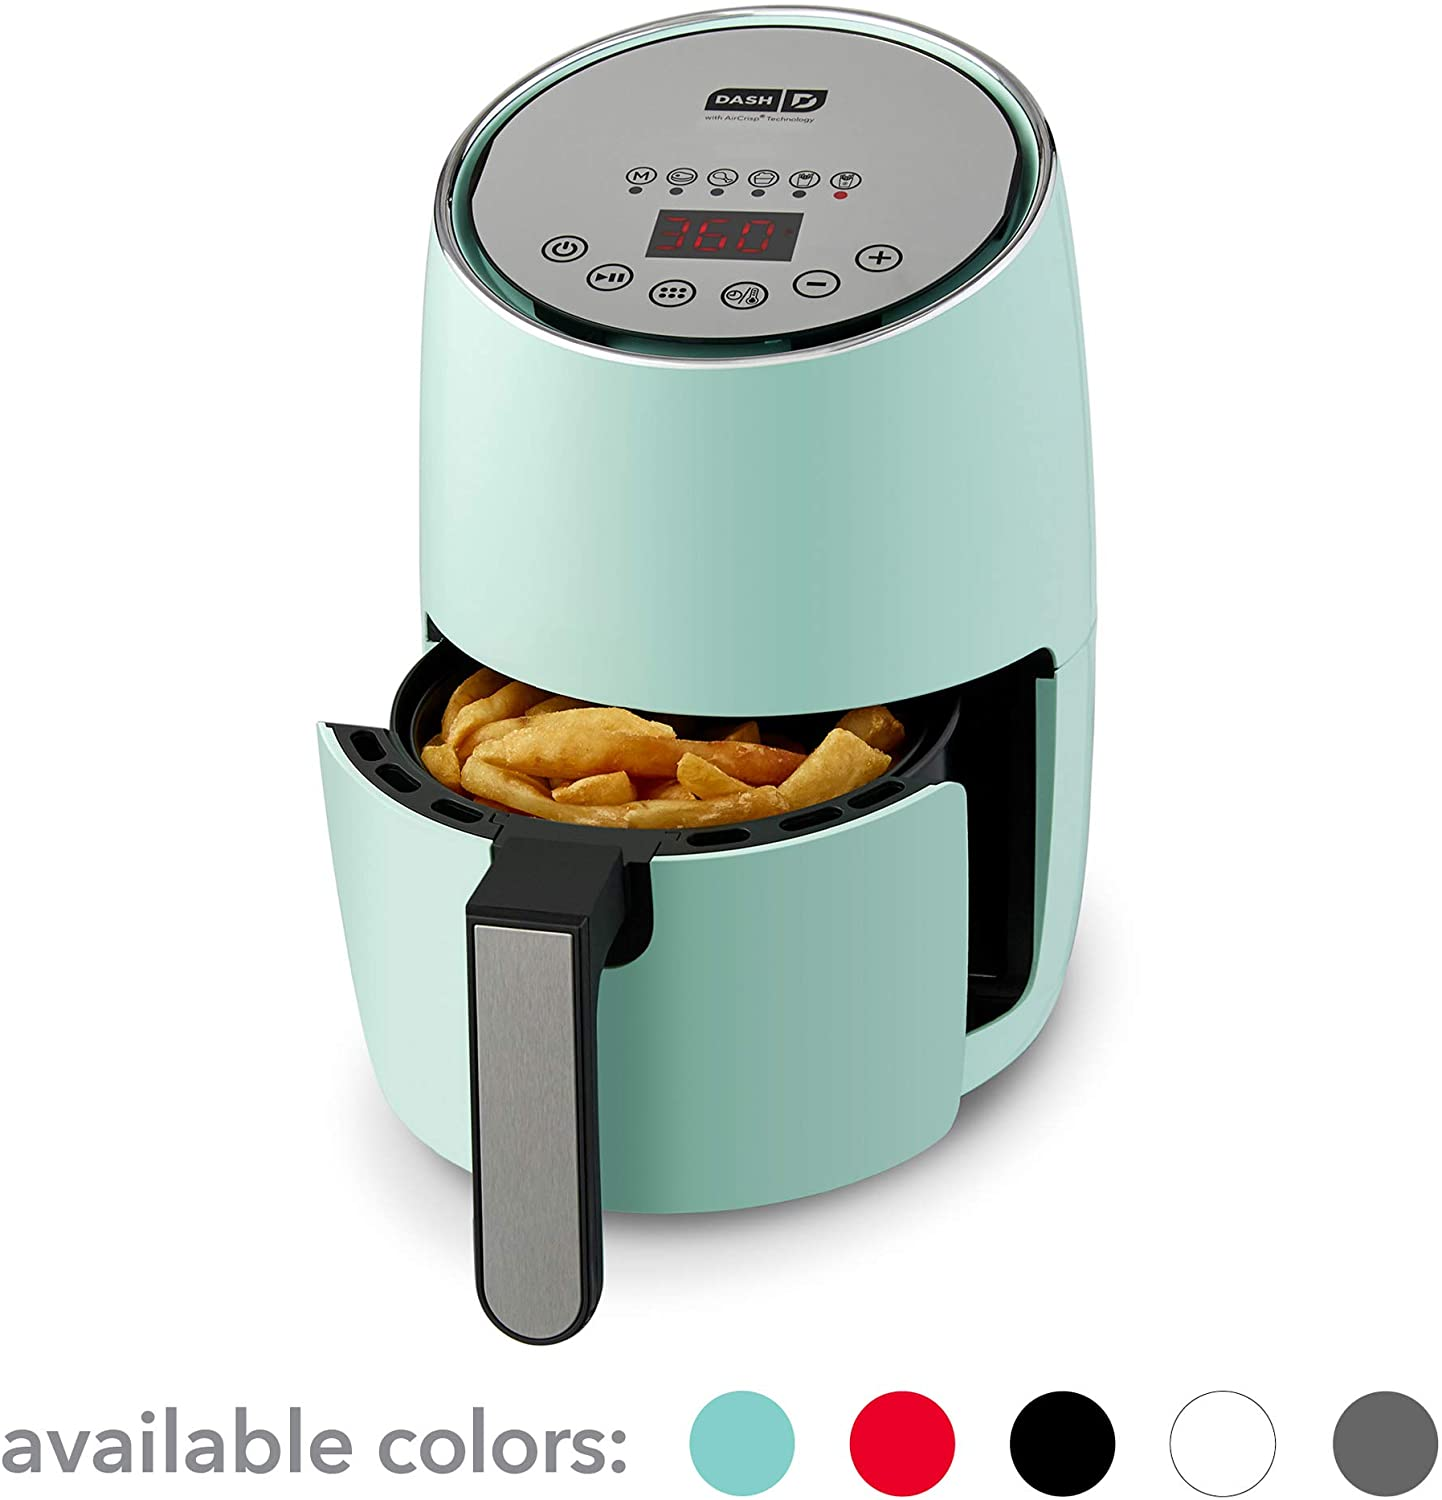 Dash Compact 1.2 Quart Air Fryer